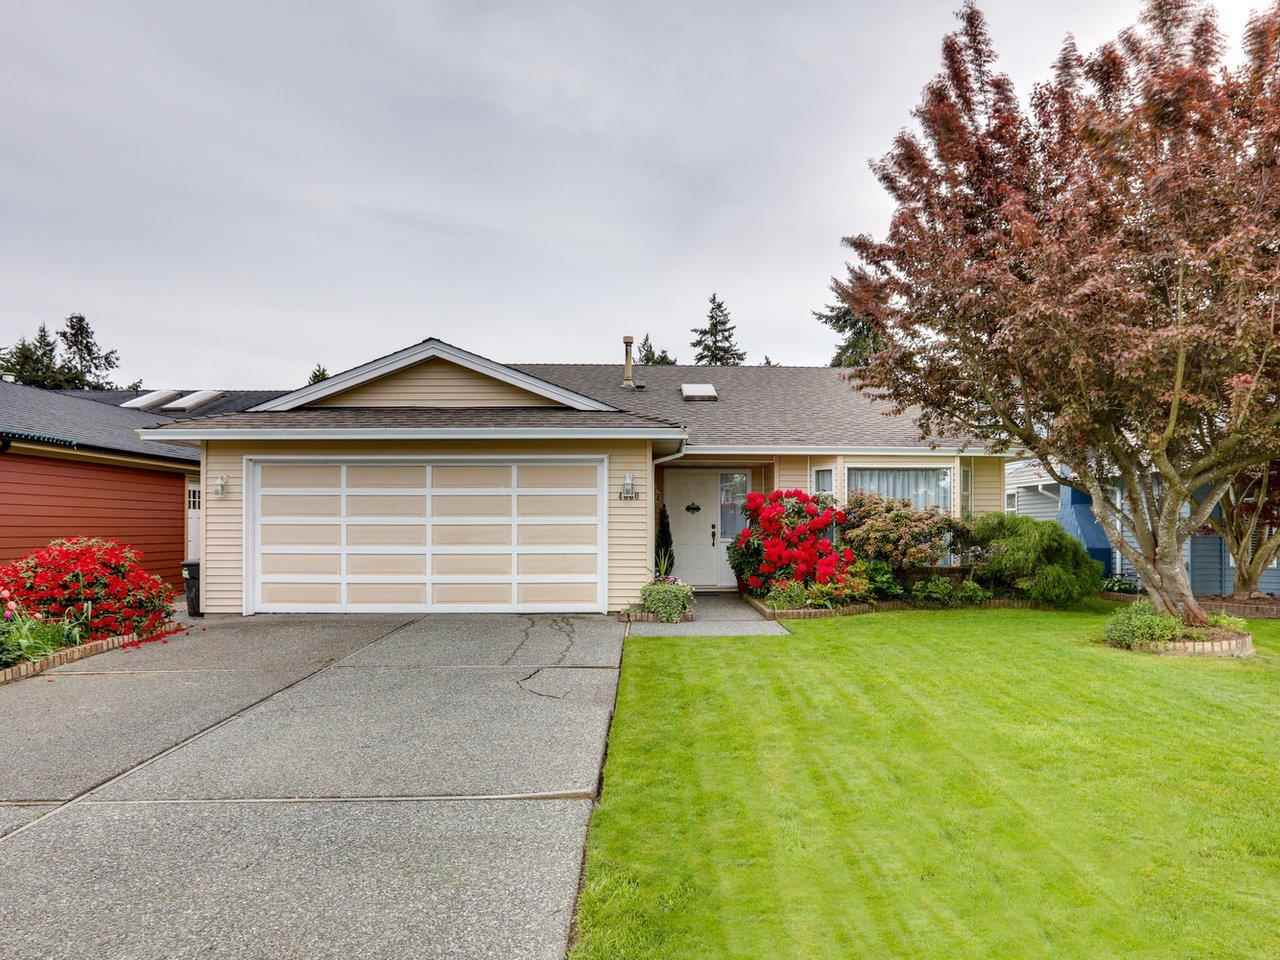 Charming 3 bedroom rancher in one of Ladner's most desirable areas. This home features a very functional design with 1500 sq ft of living space and includes a traditional living/dining area that is large enough for family gatherings. Spacious kitchen with stainless steel appliances opens up to the cozy family room with gas fireplace. Covered patio off family room is great for all season BBQ's. Large master bedroom with walk-in closet and 3 piece ensuite plus 2 more excellent sized bedrooms. Meticulously kept and ready to move in. Additional features: newer furnace and hot water tank, Penfold roof, crown mouldings throughout, large bright foyer & 2 car garage. Walking distance to shops, transit, recreation and quaint village of Ladner.